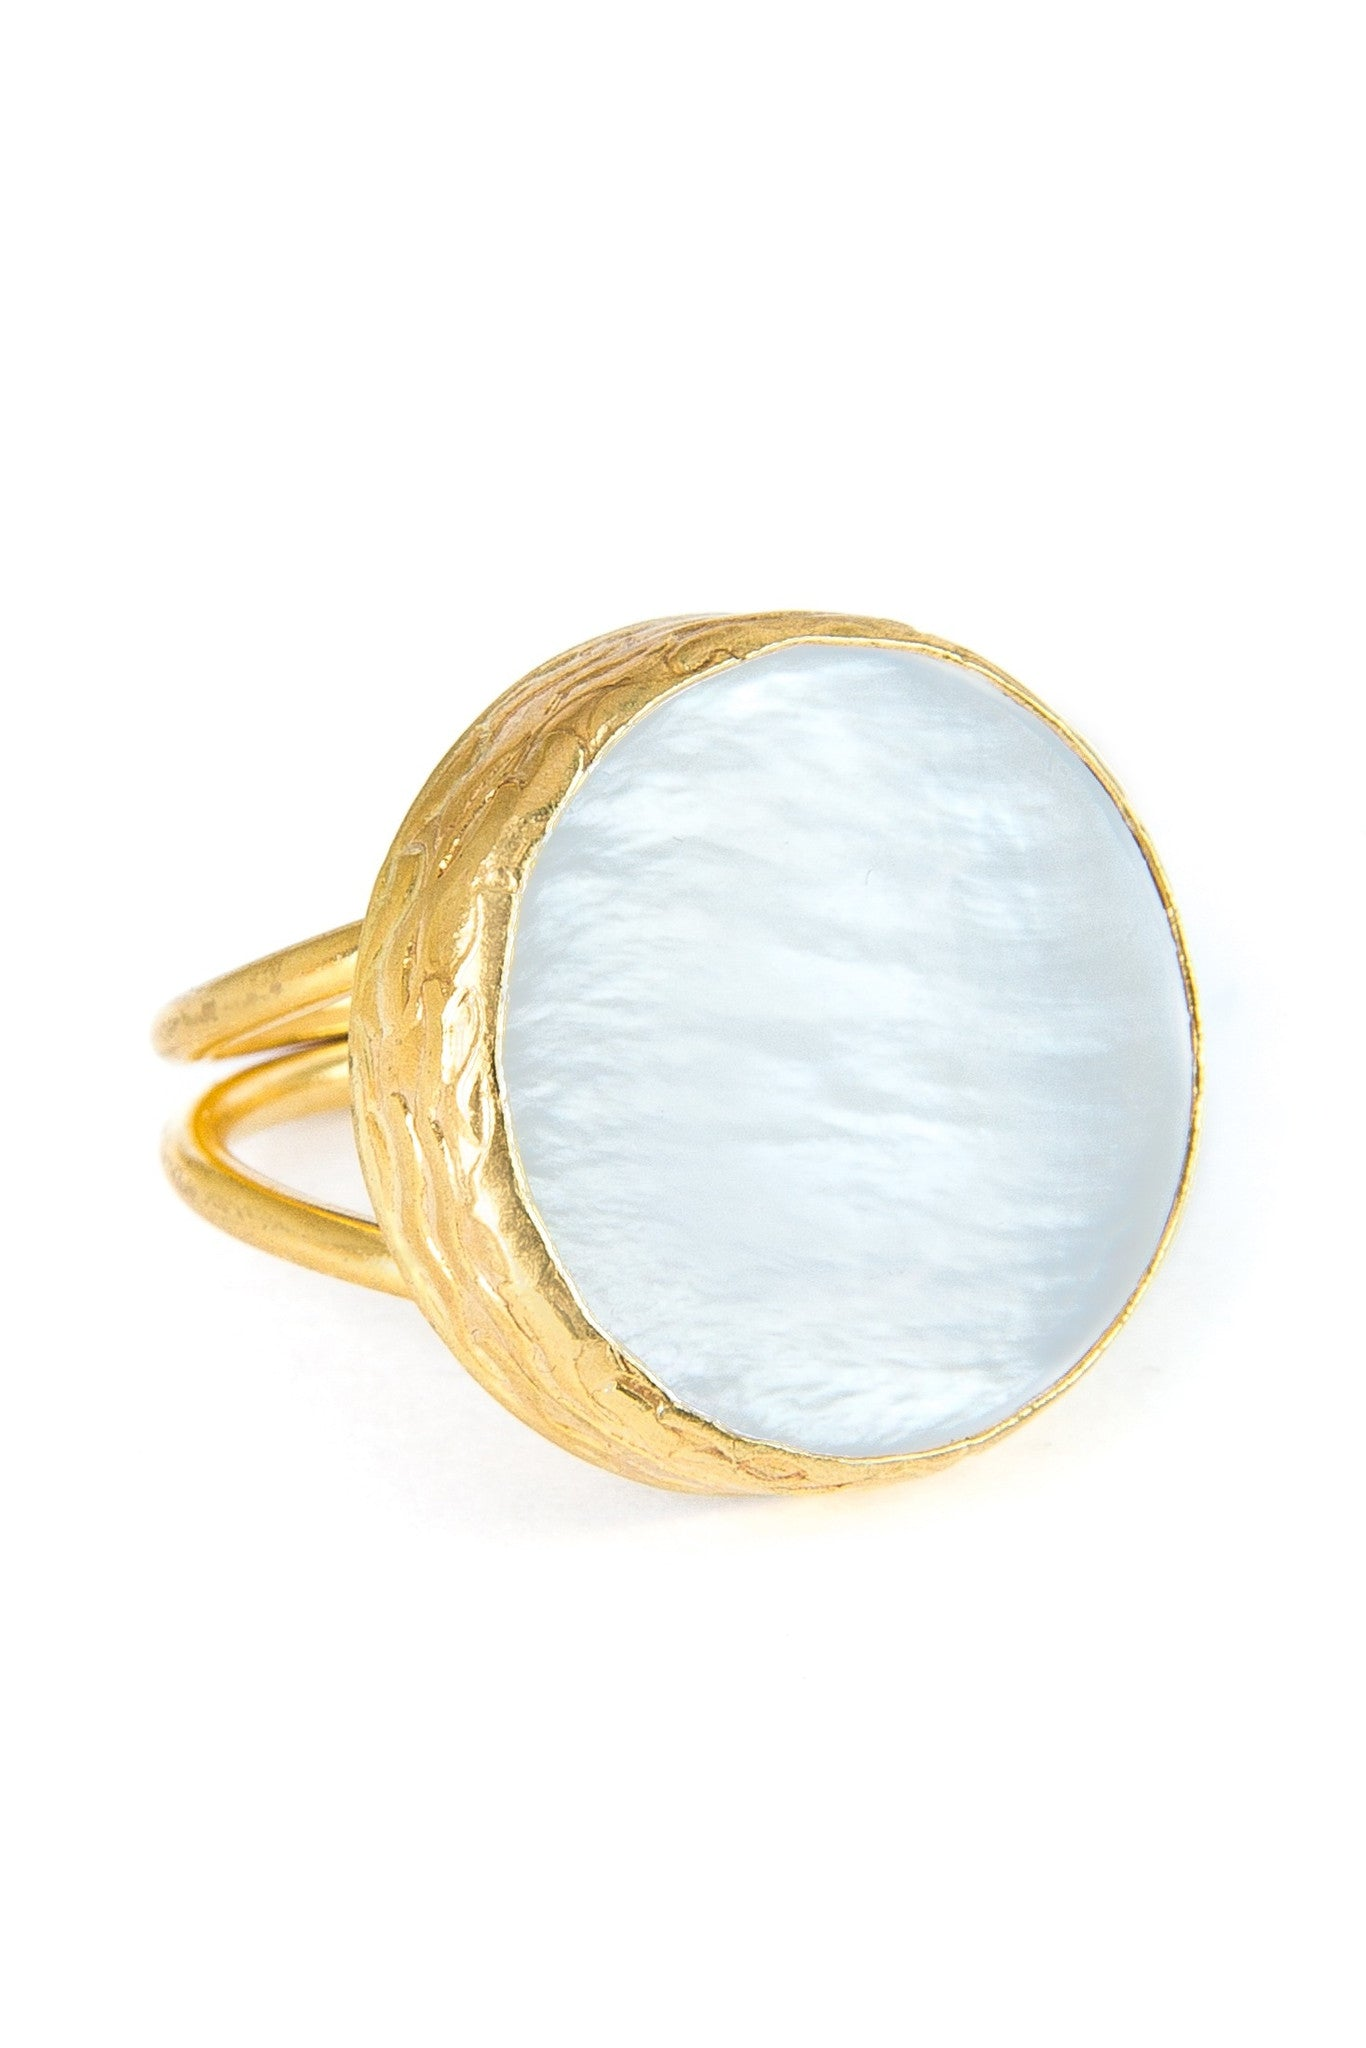 Mother of Pearl Gemstone Gold Ring - Lulugem.com